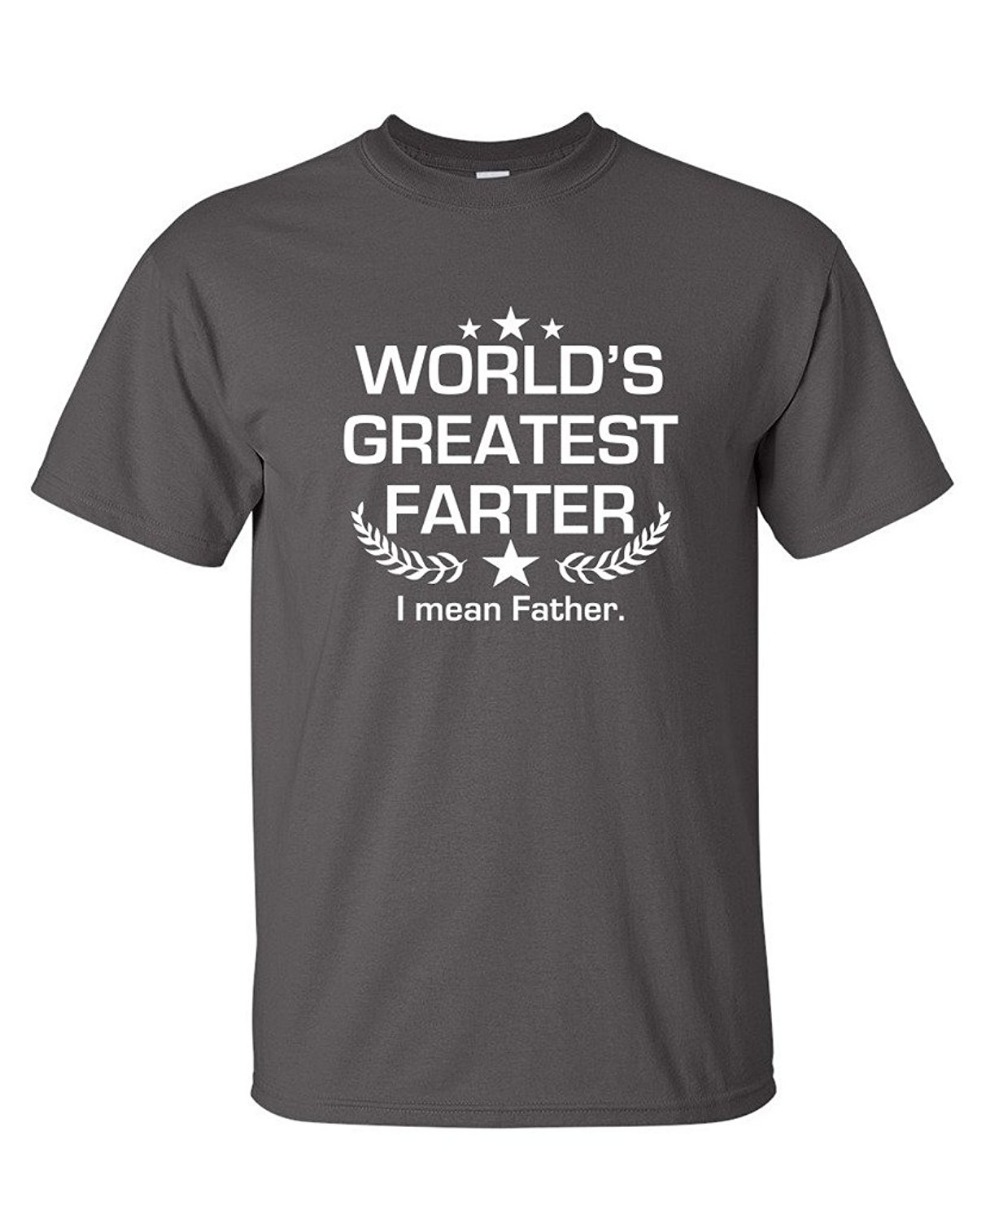 Newest 2018 T Shirt Fashion MenS Short Sleeve Zomer O-Neck Worlds Greatest Farter I Mean Fathers Day T Shirts